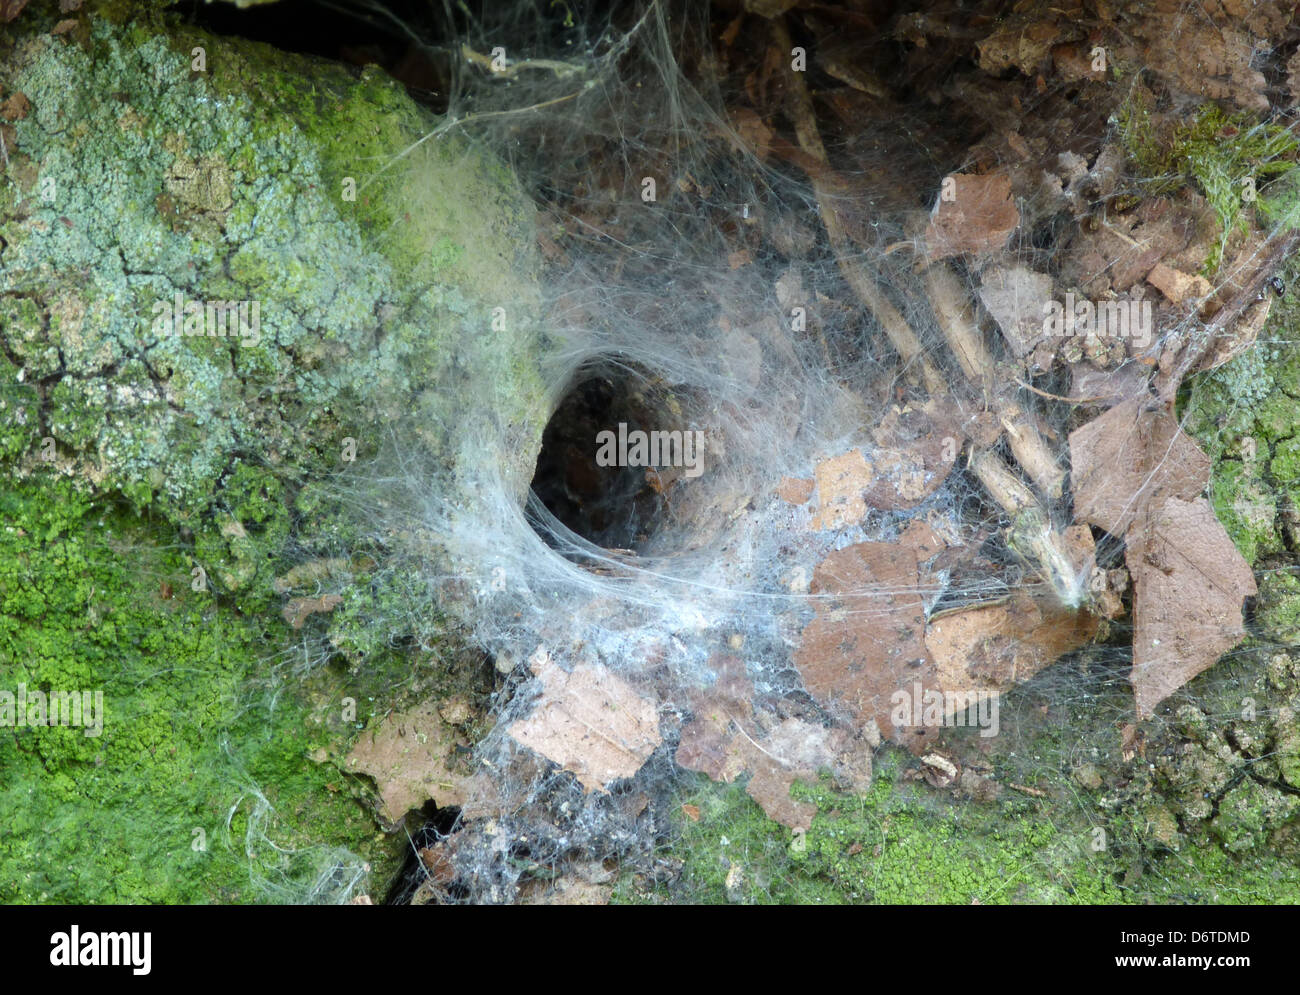 Garden Lace-webbed Spider (Amaurobius similis) entrance of web in stone wall, Leicestershire, England, August - Stock Image